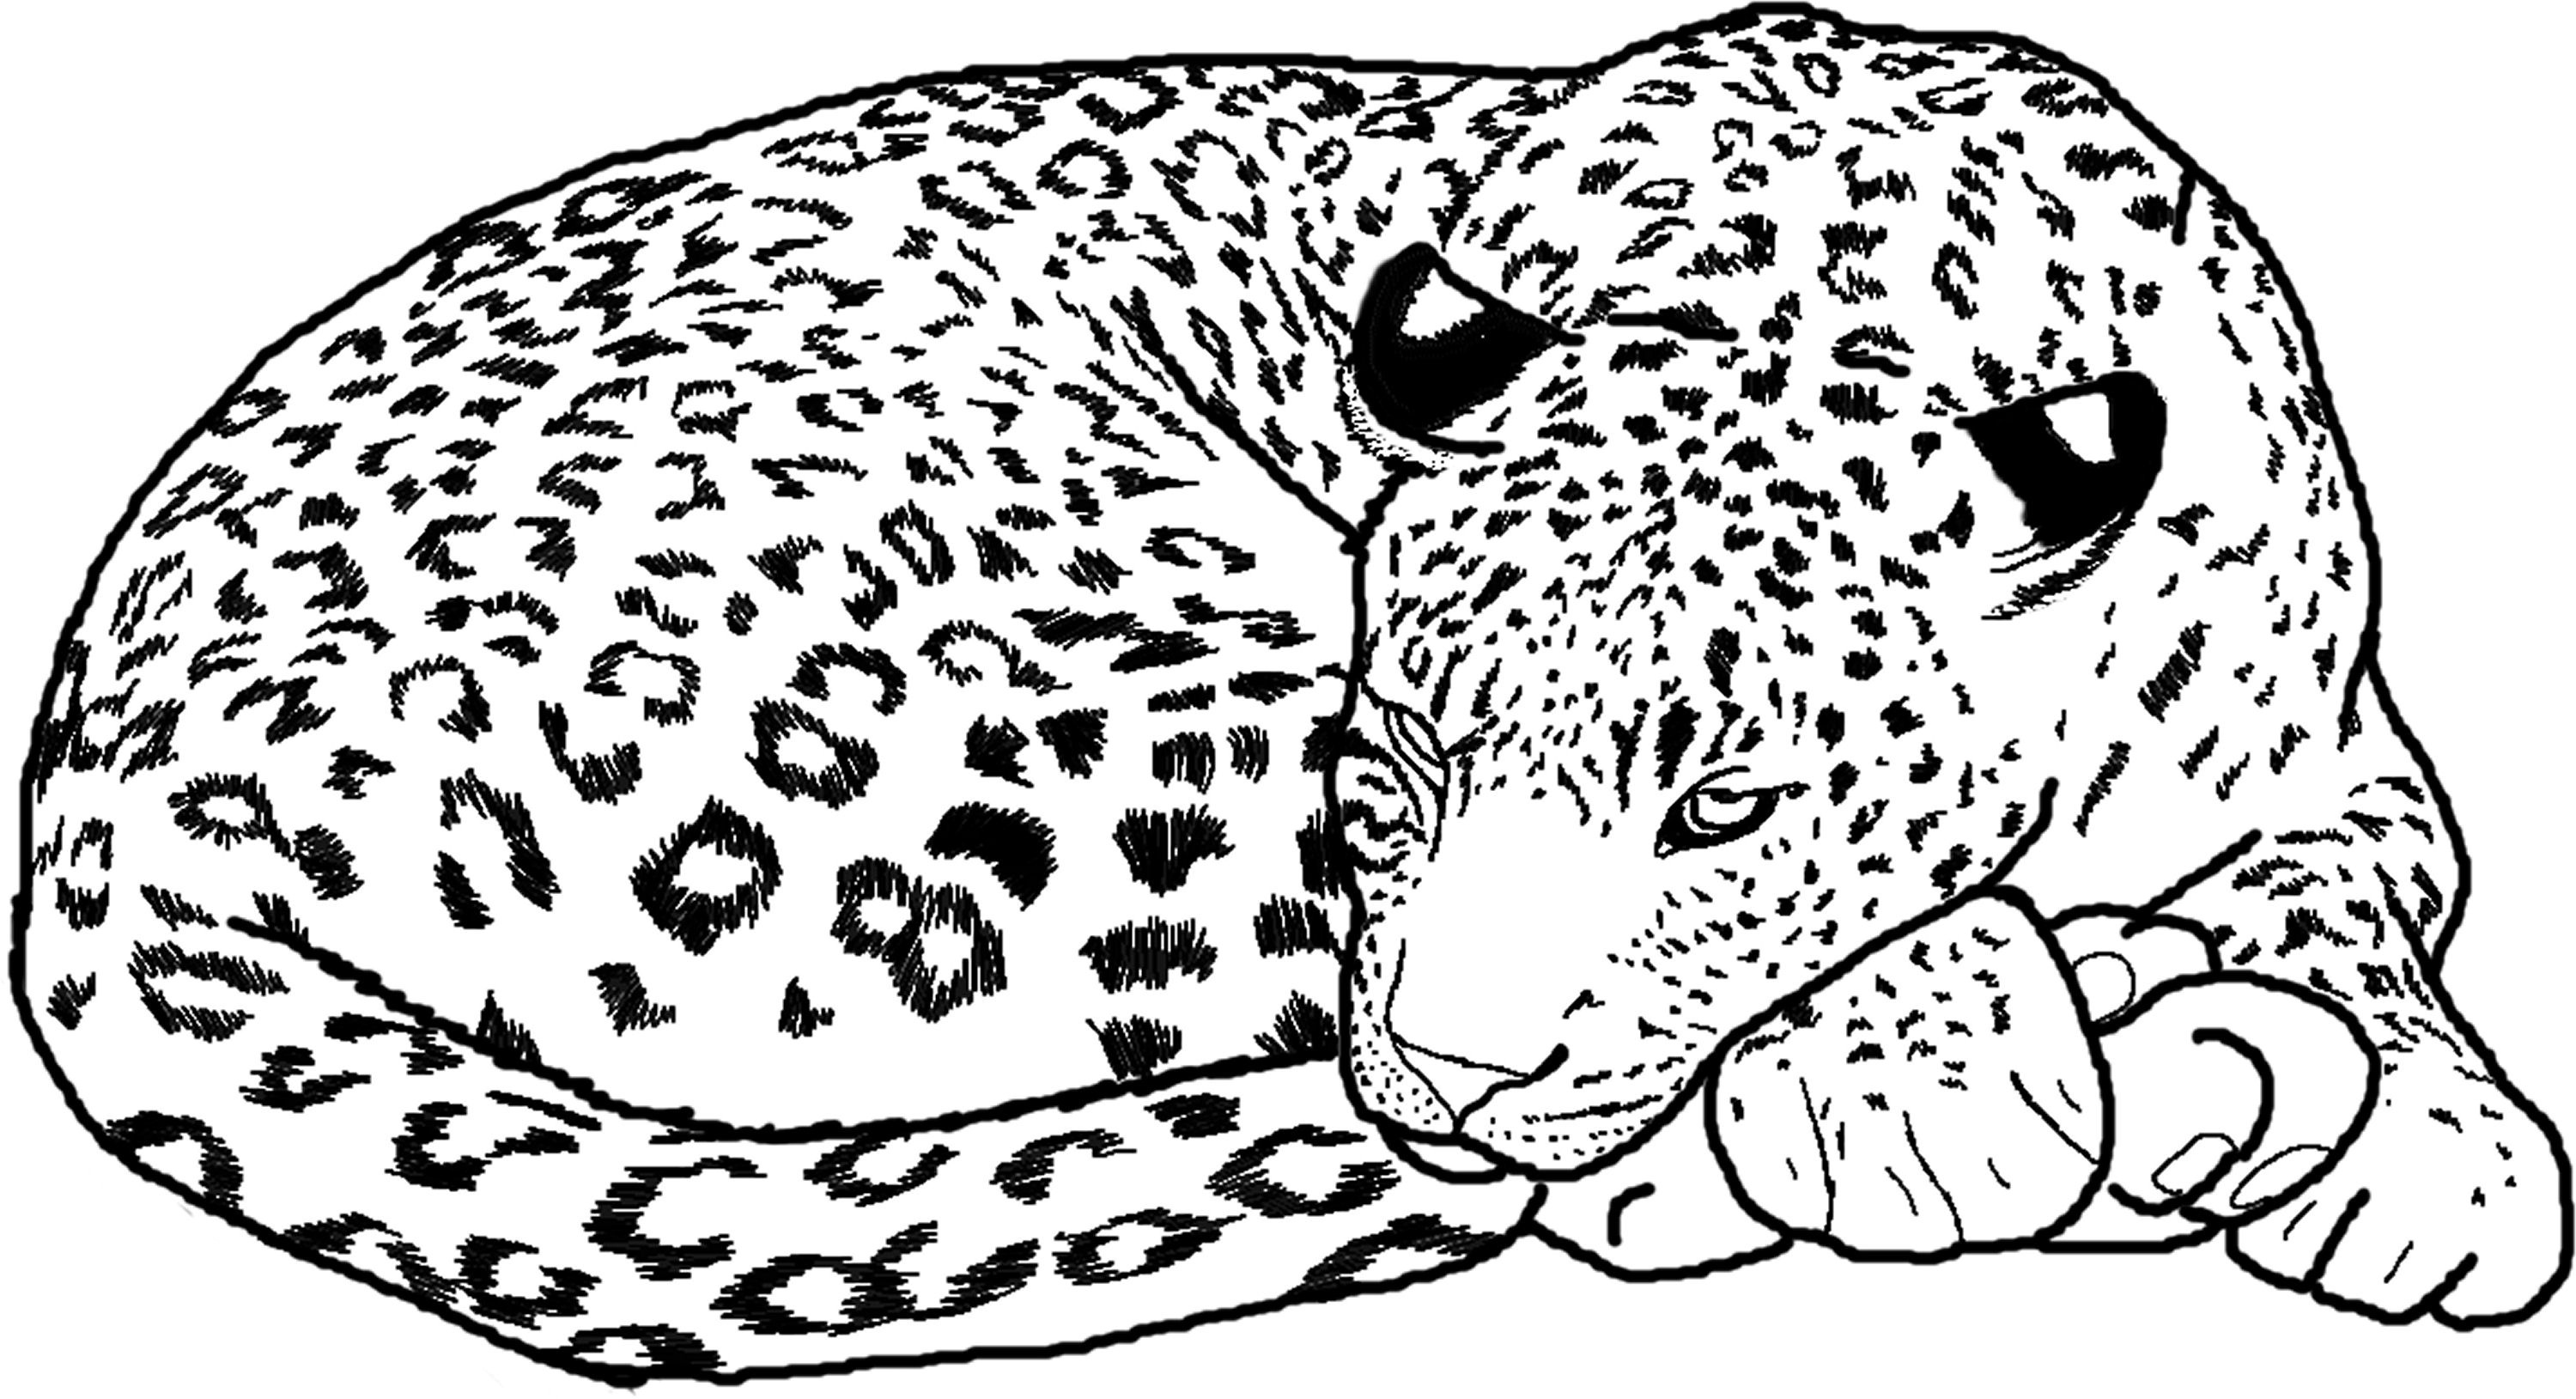 coloring pictures of cheetahs cheetah sleeping coloring page free cheetah coloring cheetahs pictures of coloring